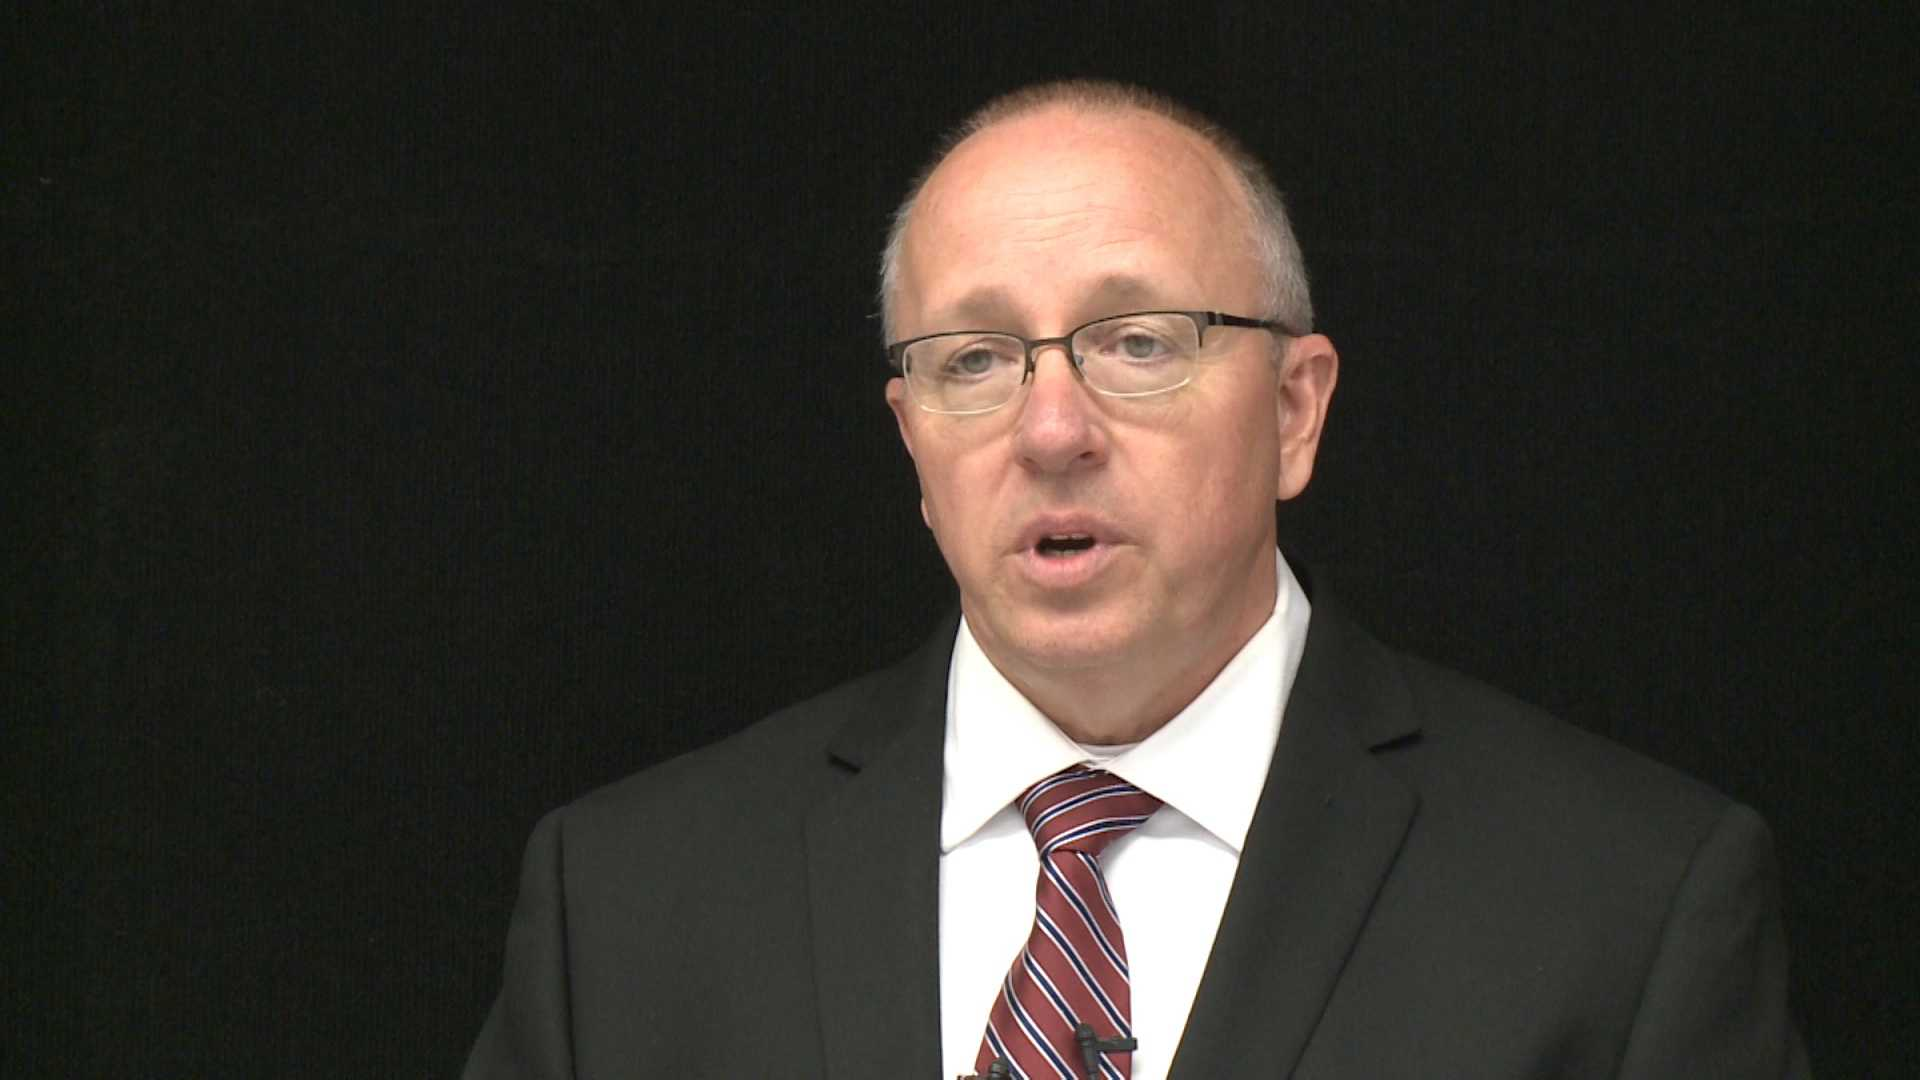 Meyer Gilbert, Benton County's newly-appointed interim sheriff, shared his plans for helping to put the department in a better light after several months of controversy and scandal leading up to former Sheriff Kelley Cradduck's resignation last month.